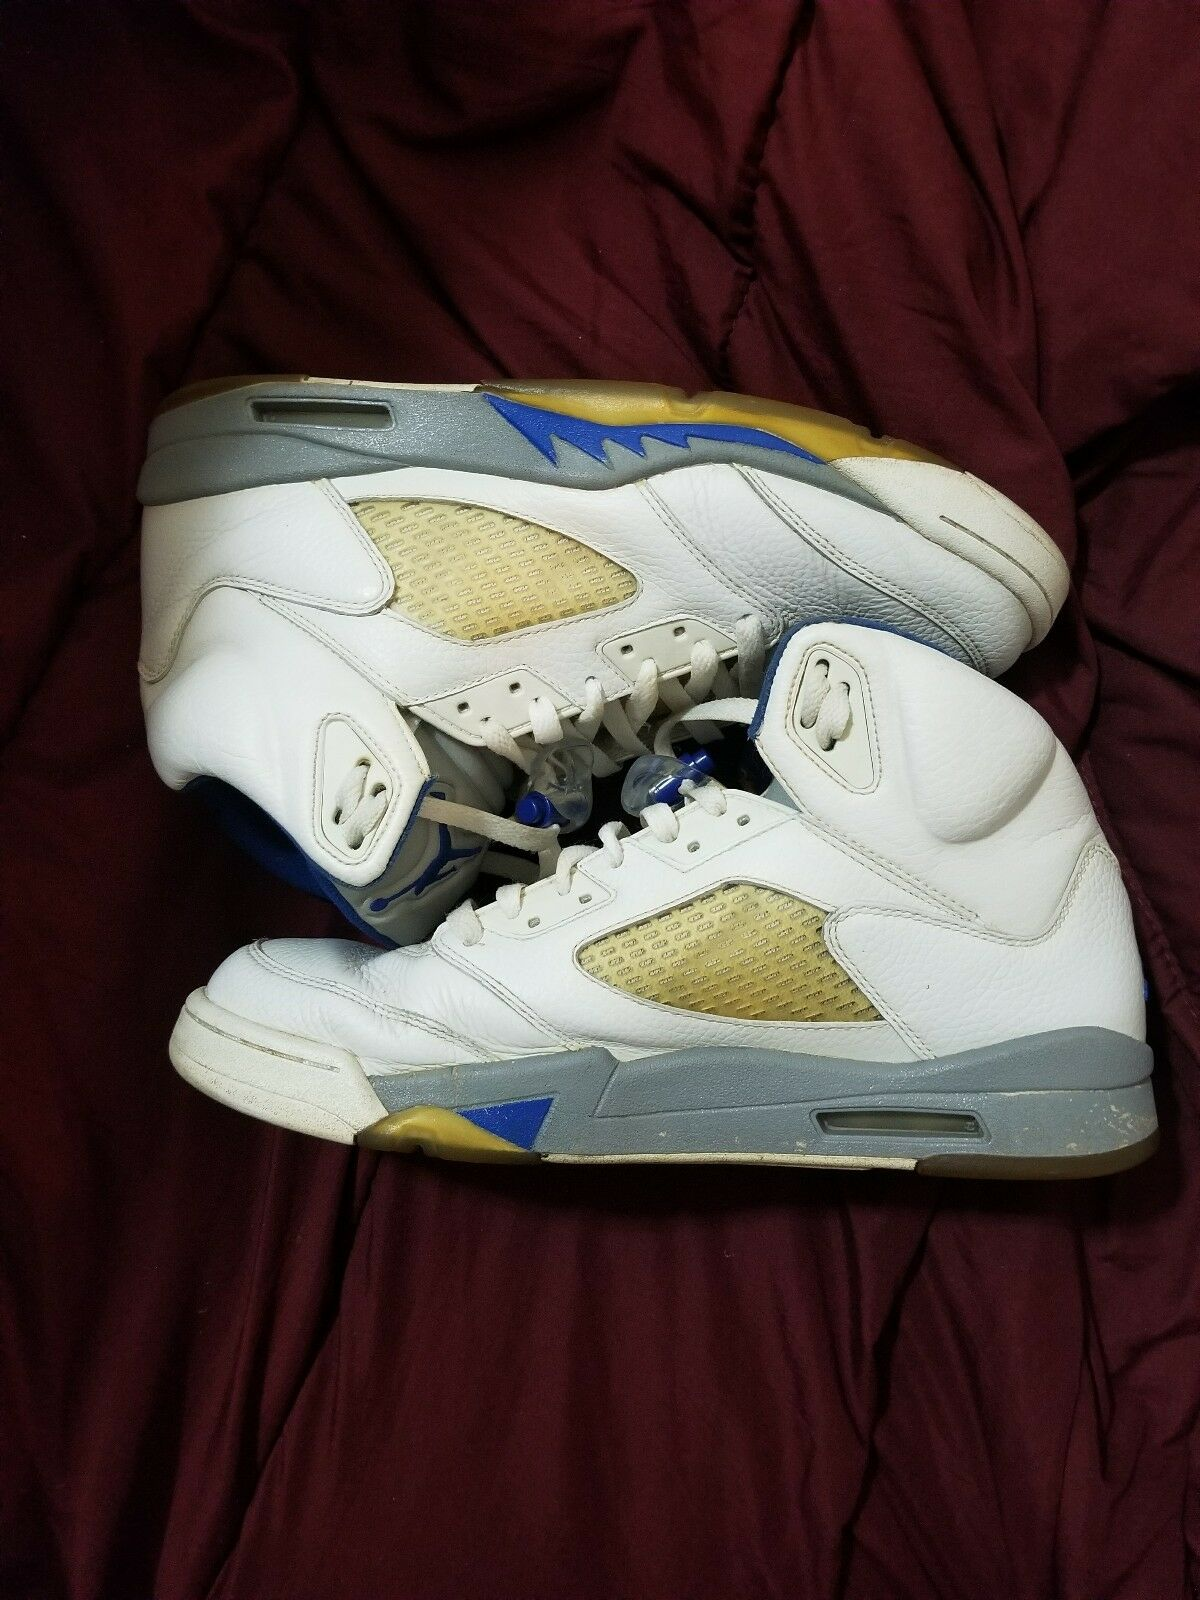 Jordan Retro 5 Stealth Grey Blue Comfortable Casual wild